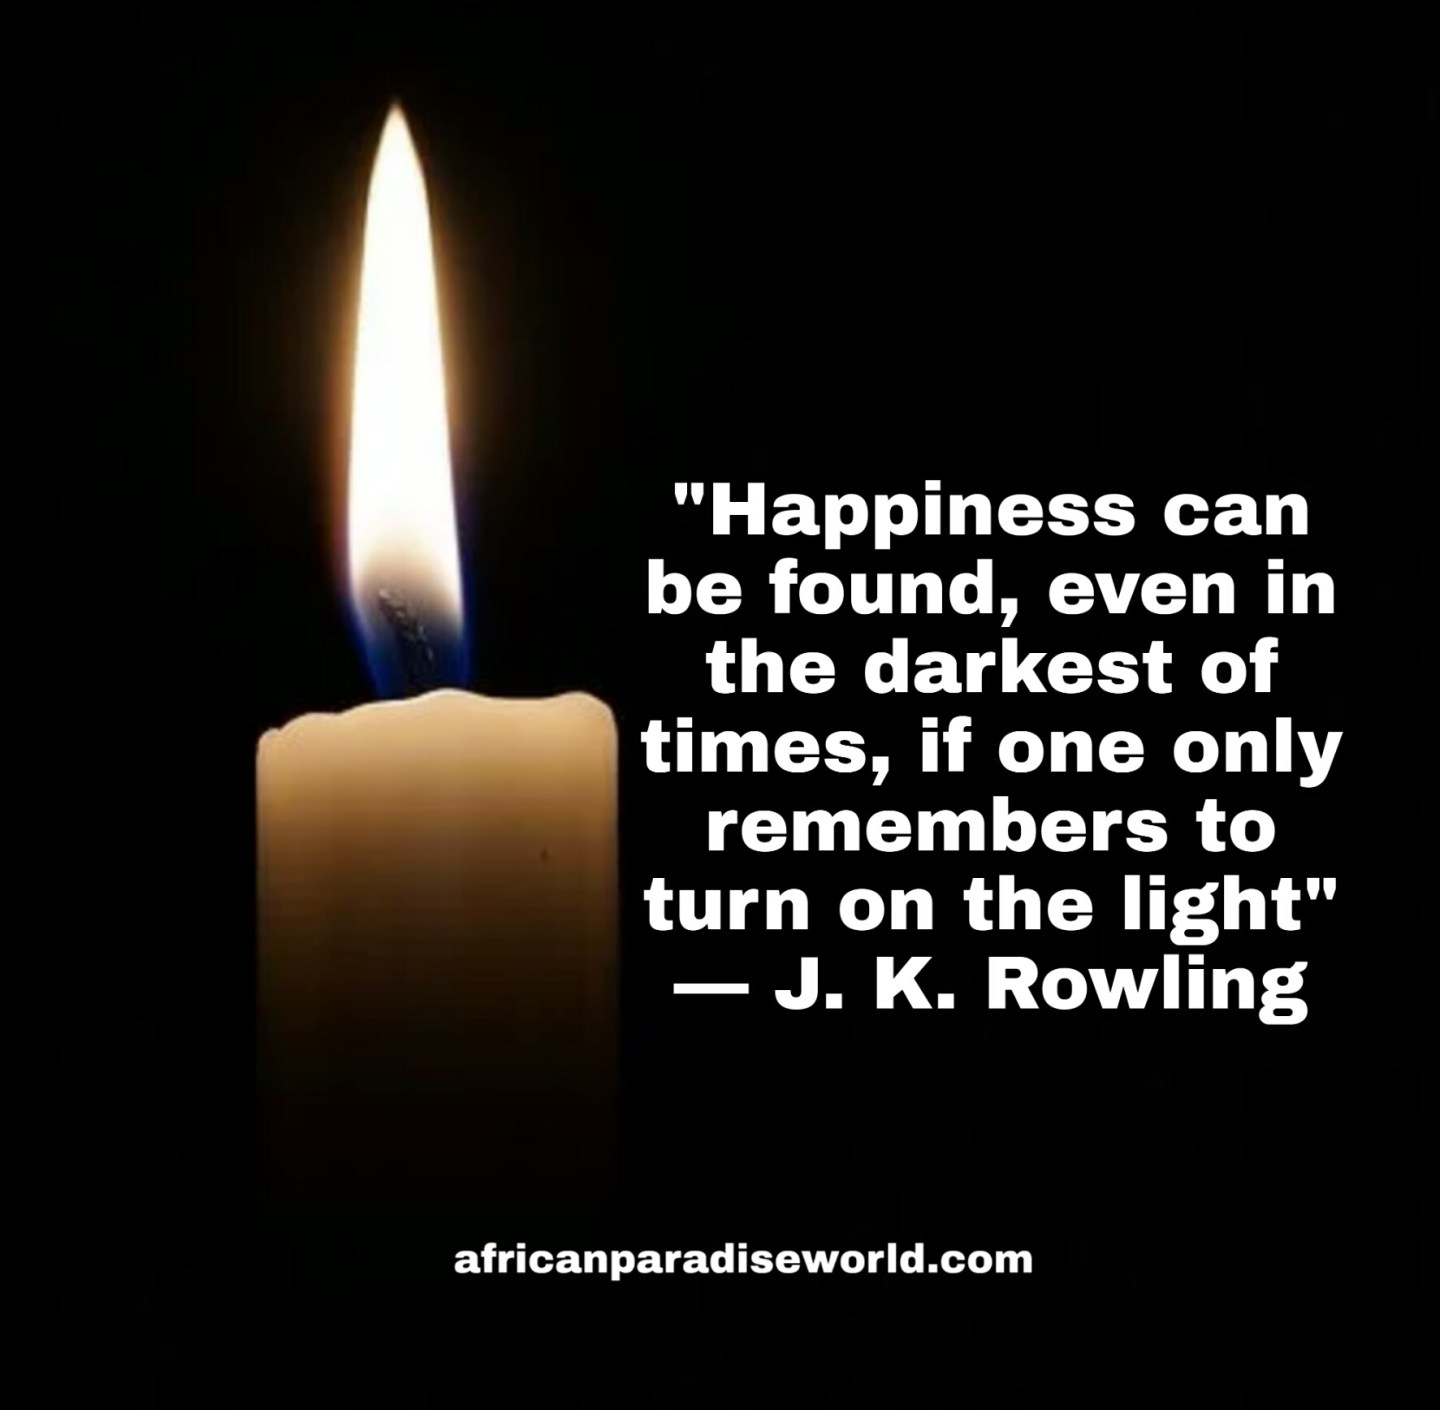 Happiness found in darkest of times quote